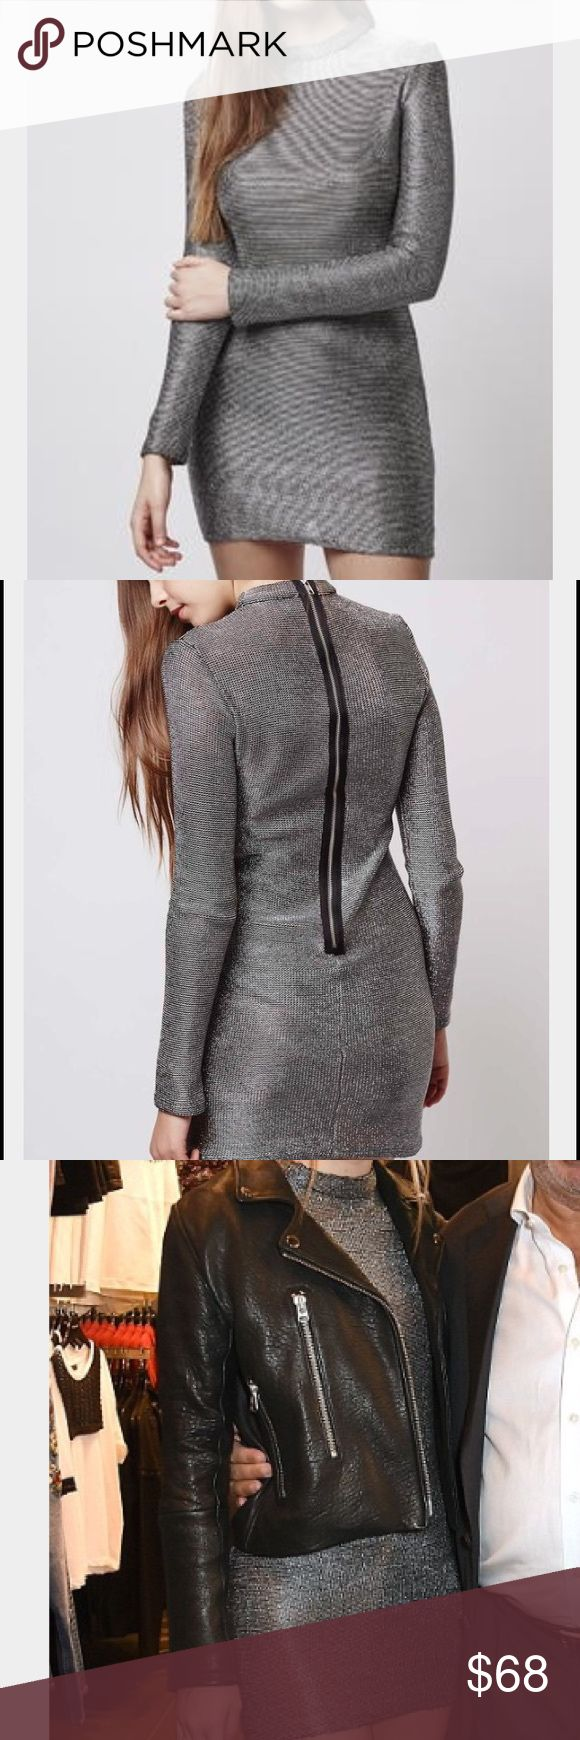 Topshop metallic mini dress Topshop women's silver high neck chain mail mini dress. Never worn, new with tags! Perfect for holiday parties, pair with over the knee boots! Topshop Dresses Mini